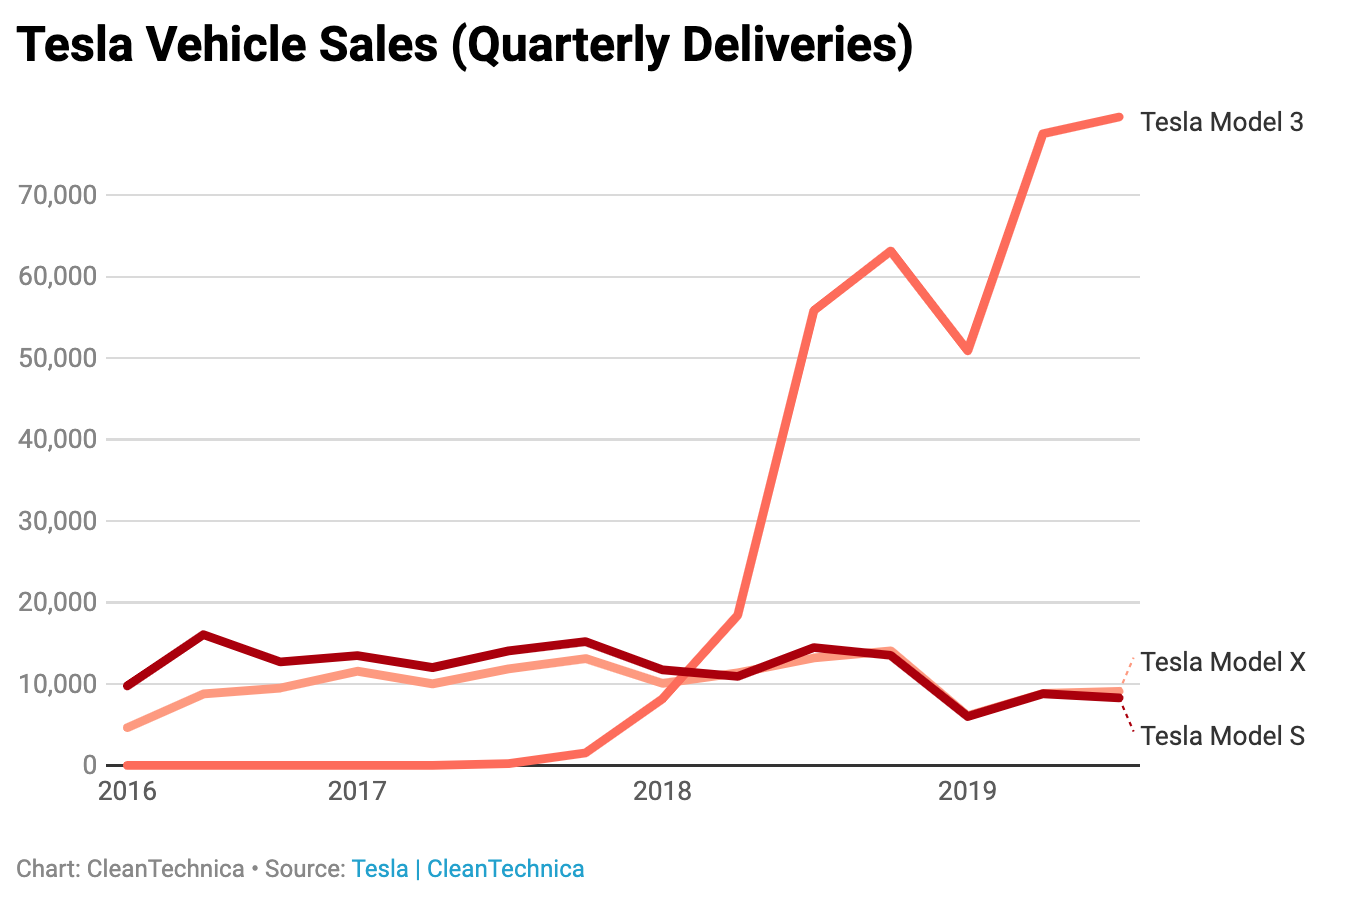 Chart: Tesal Vehicle Sales (Quarterly Deliveries)